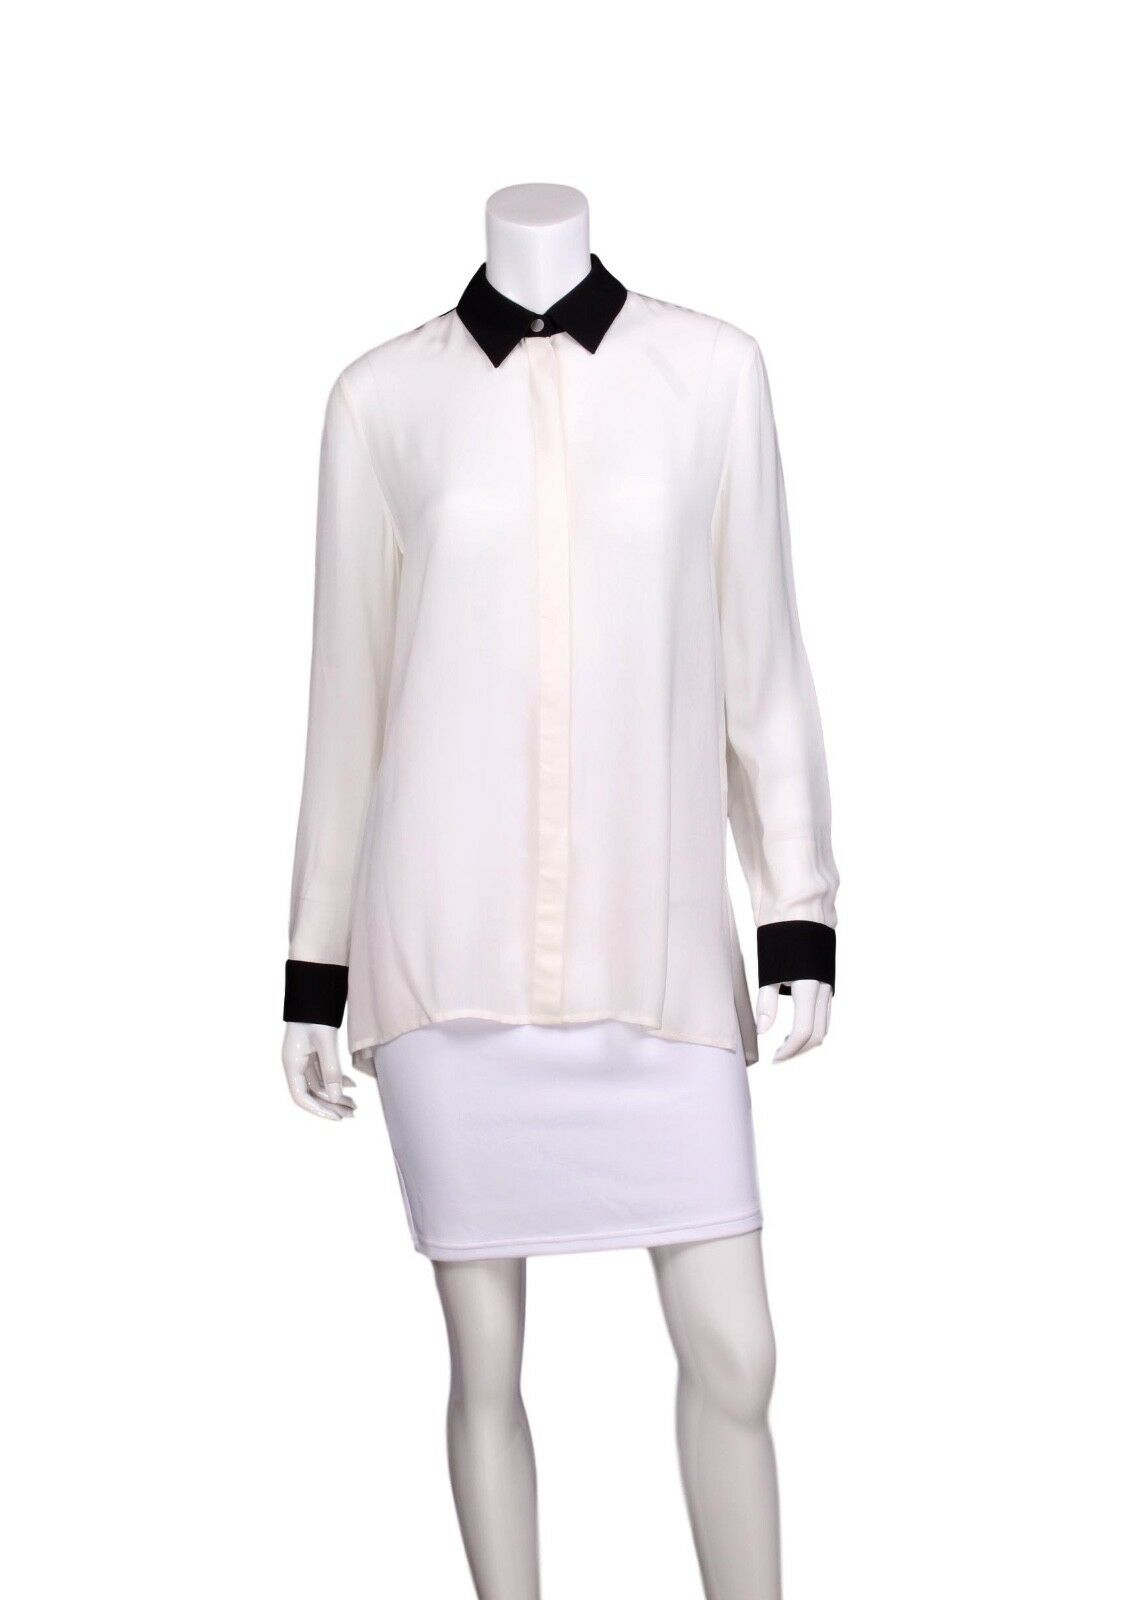 THE ROW Weiß & schwarz Farbe Block Collarot Long Sleeve Button-Up Blouse - US 4